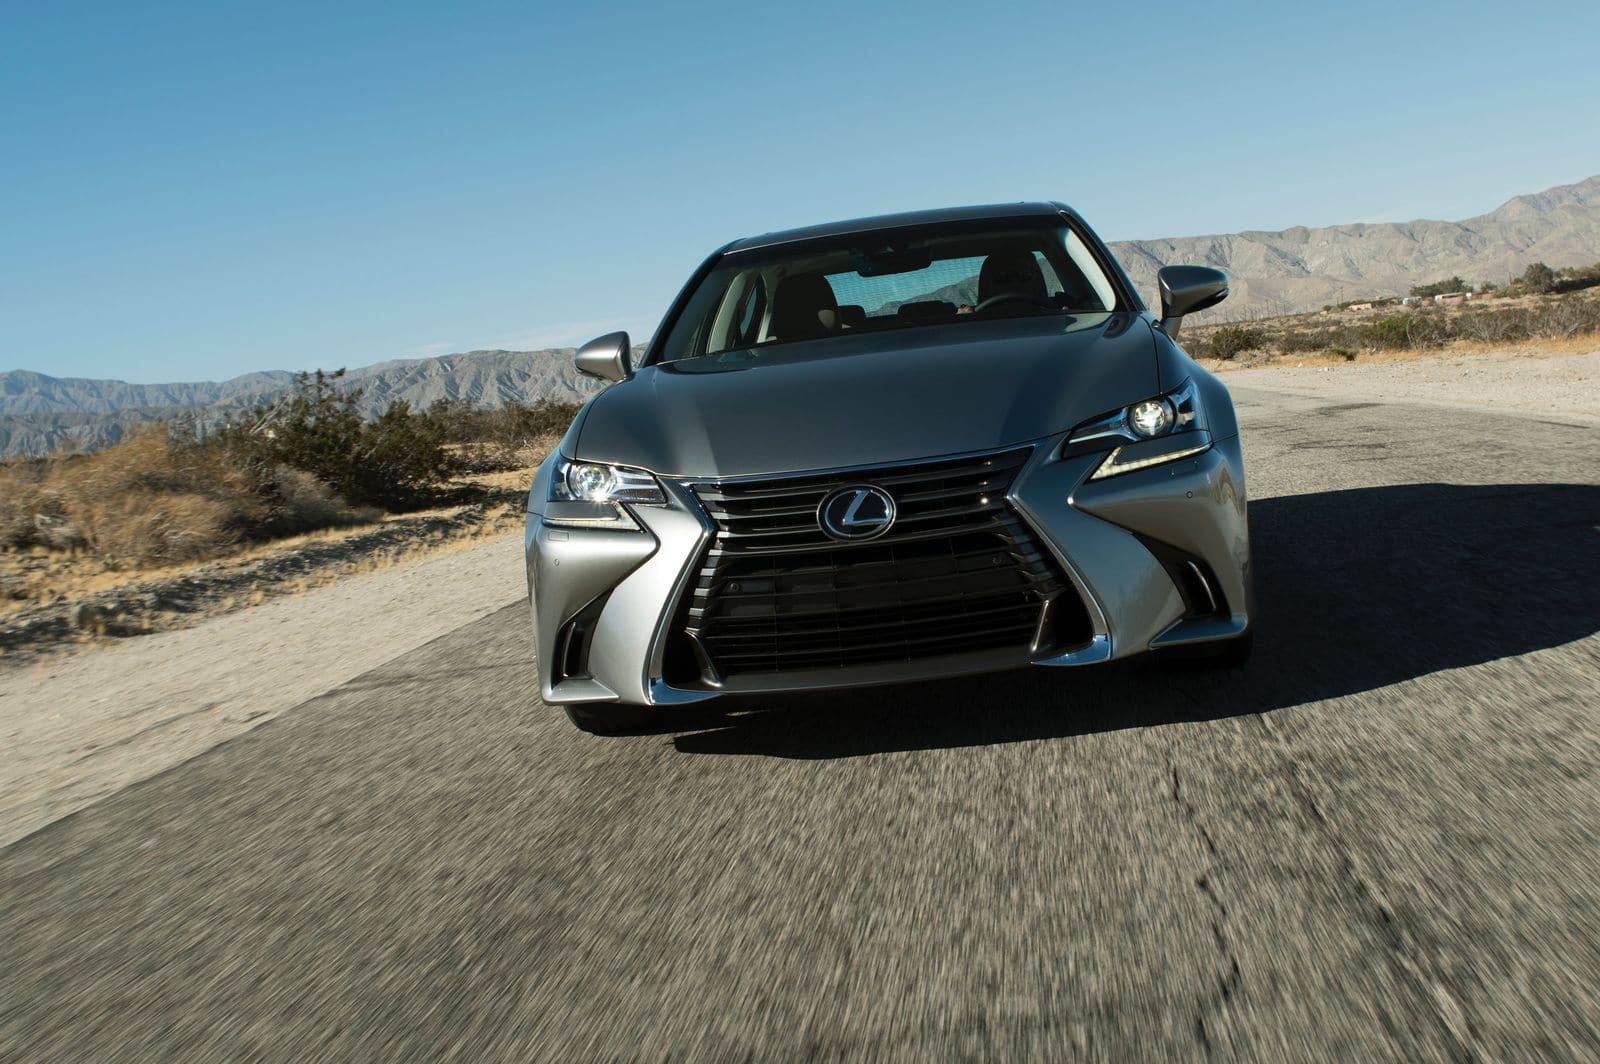 La Lexus GS met le turbo